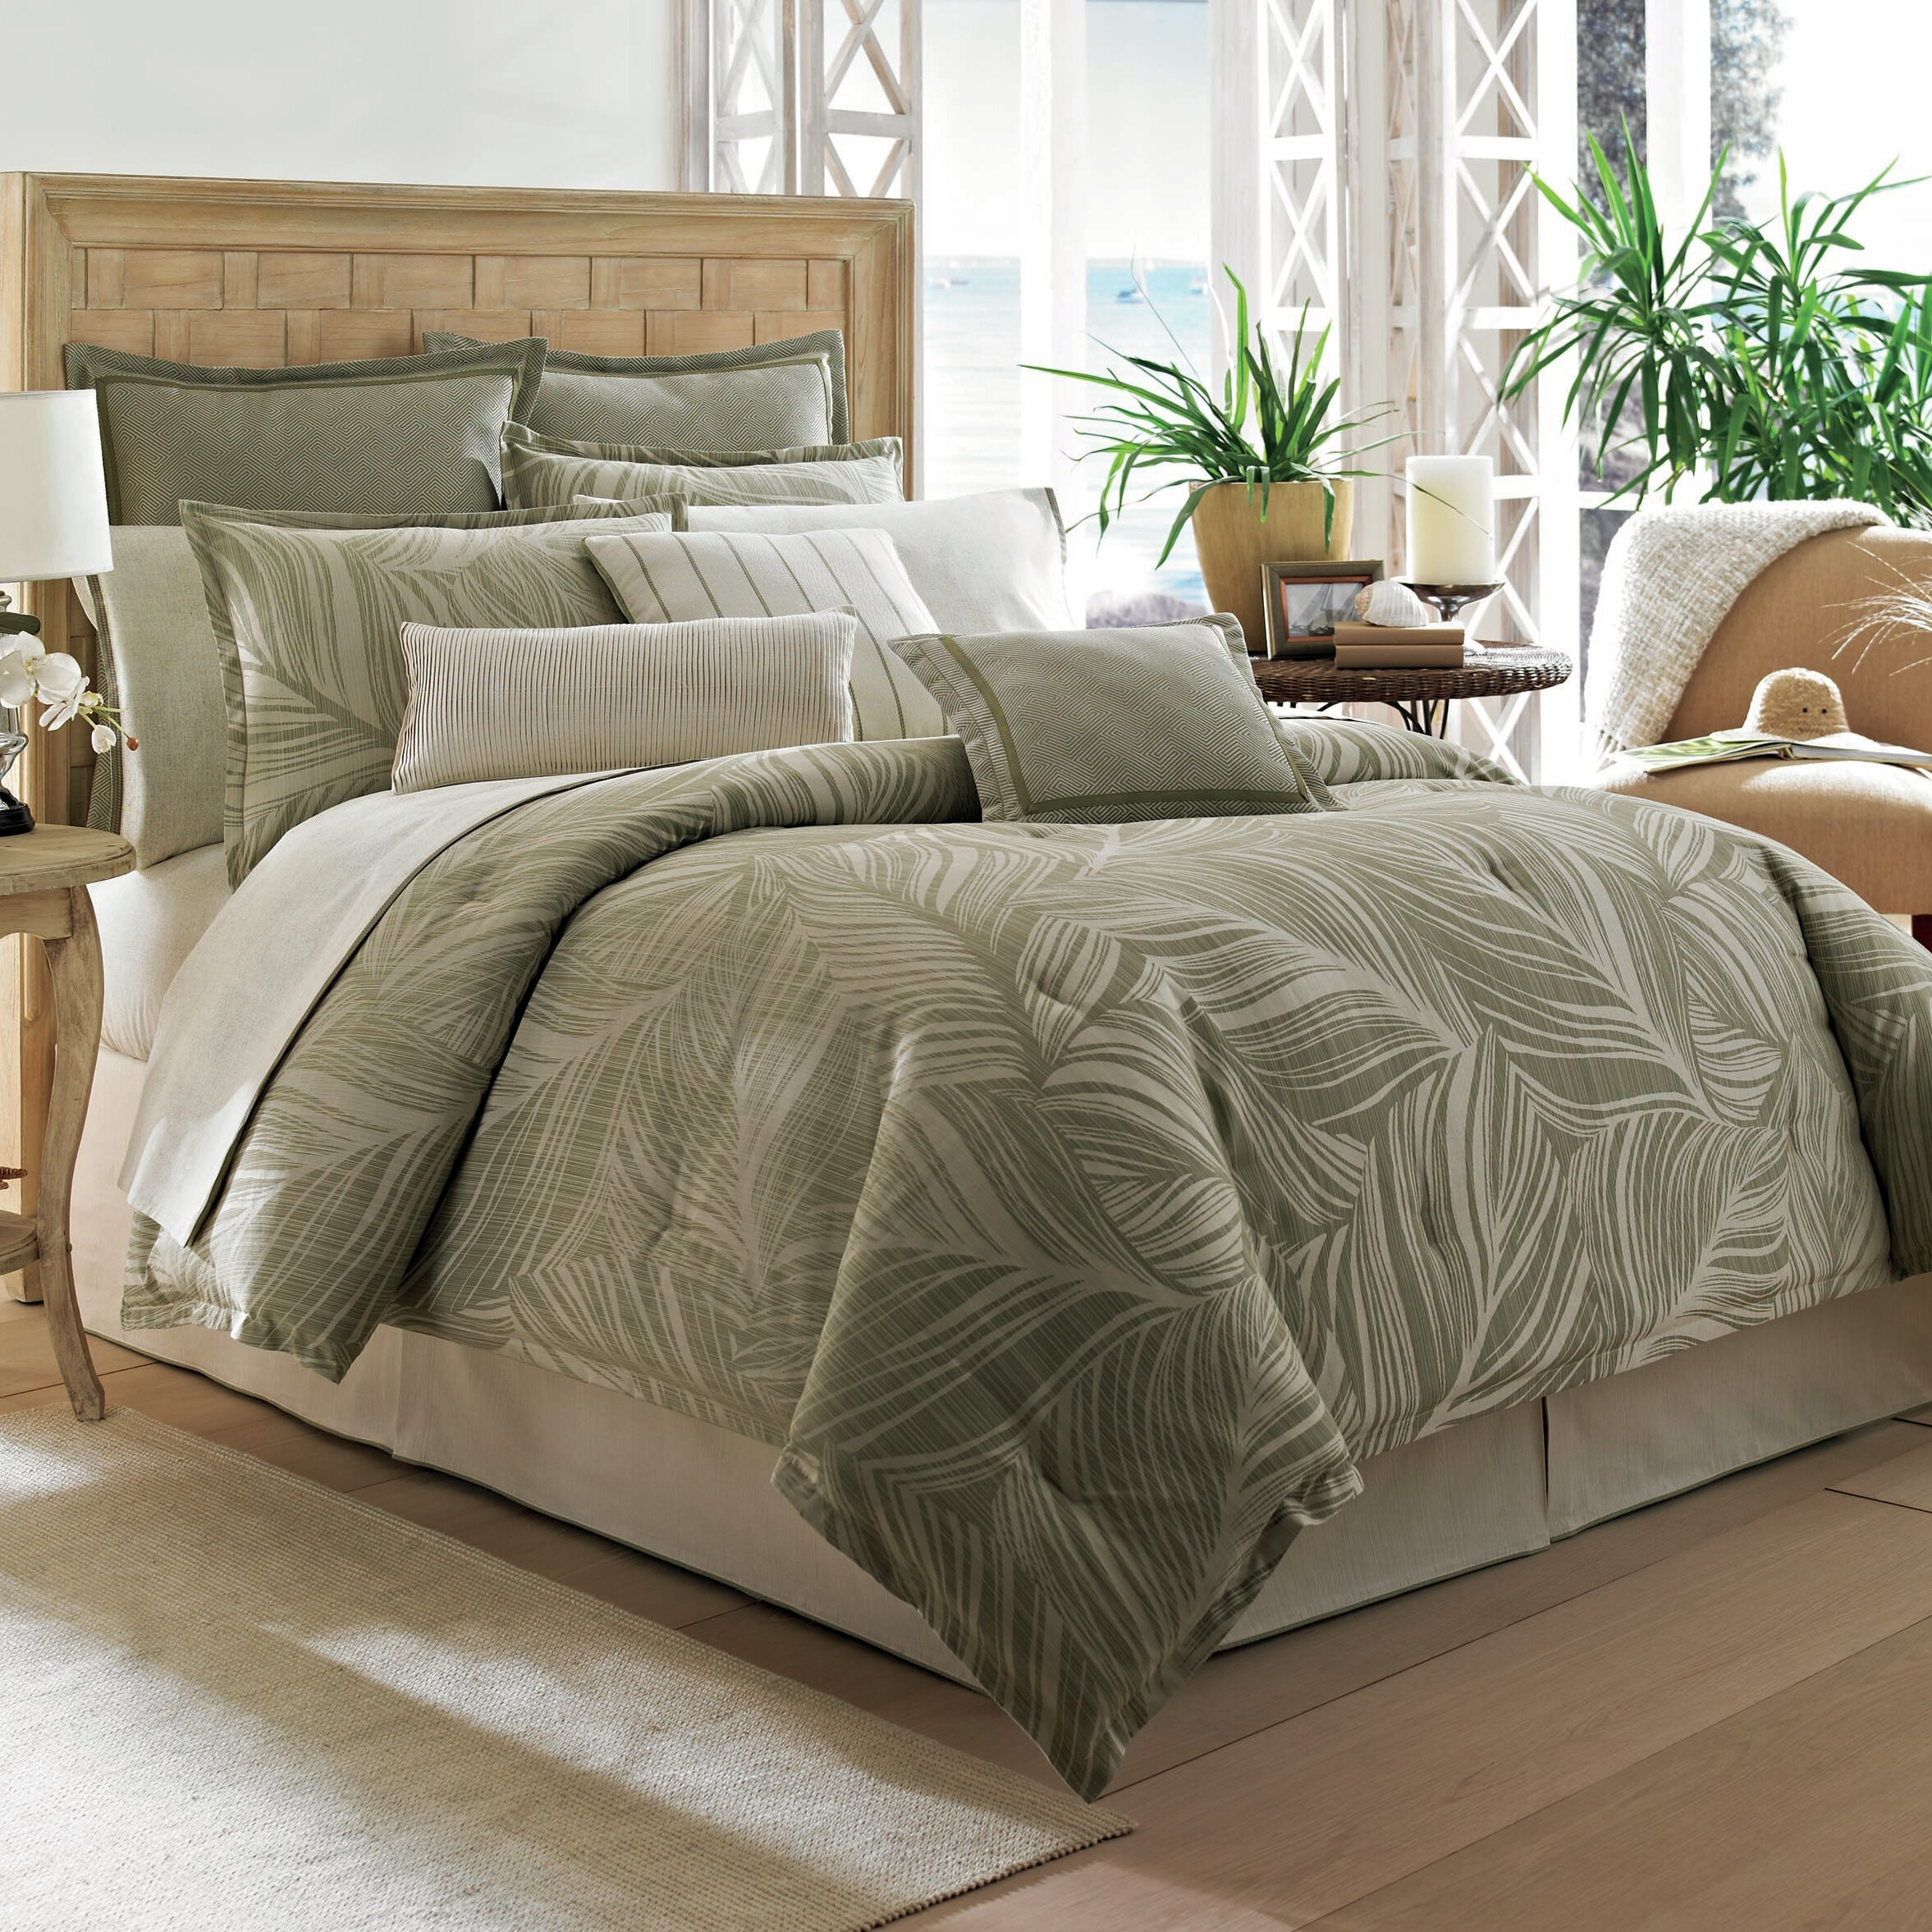 Tommy bahama bedding montauk drifter comforter collection for Bed settings